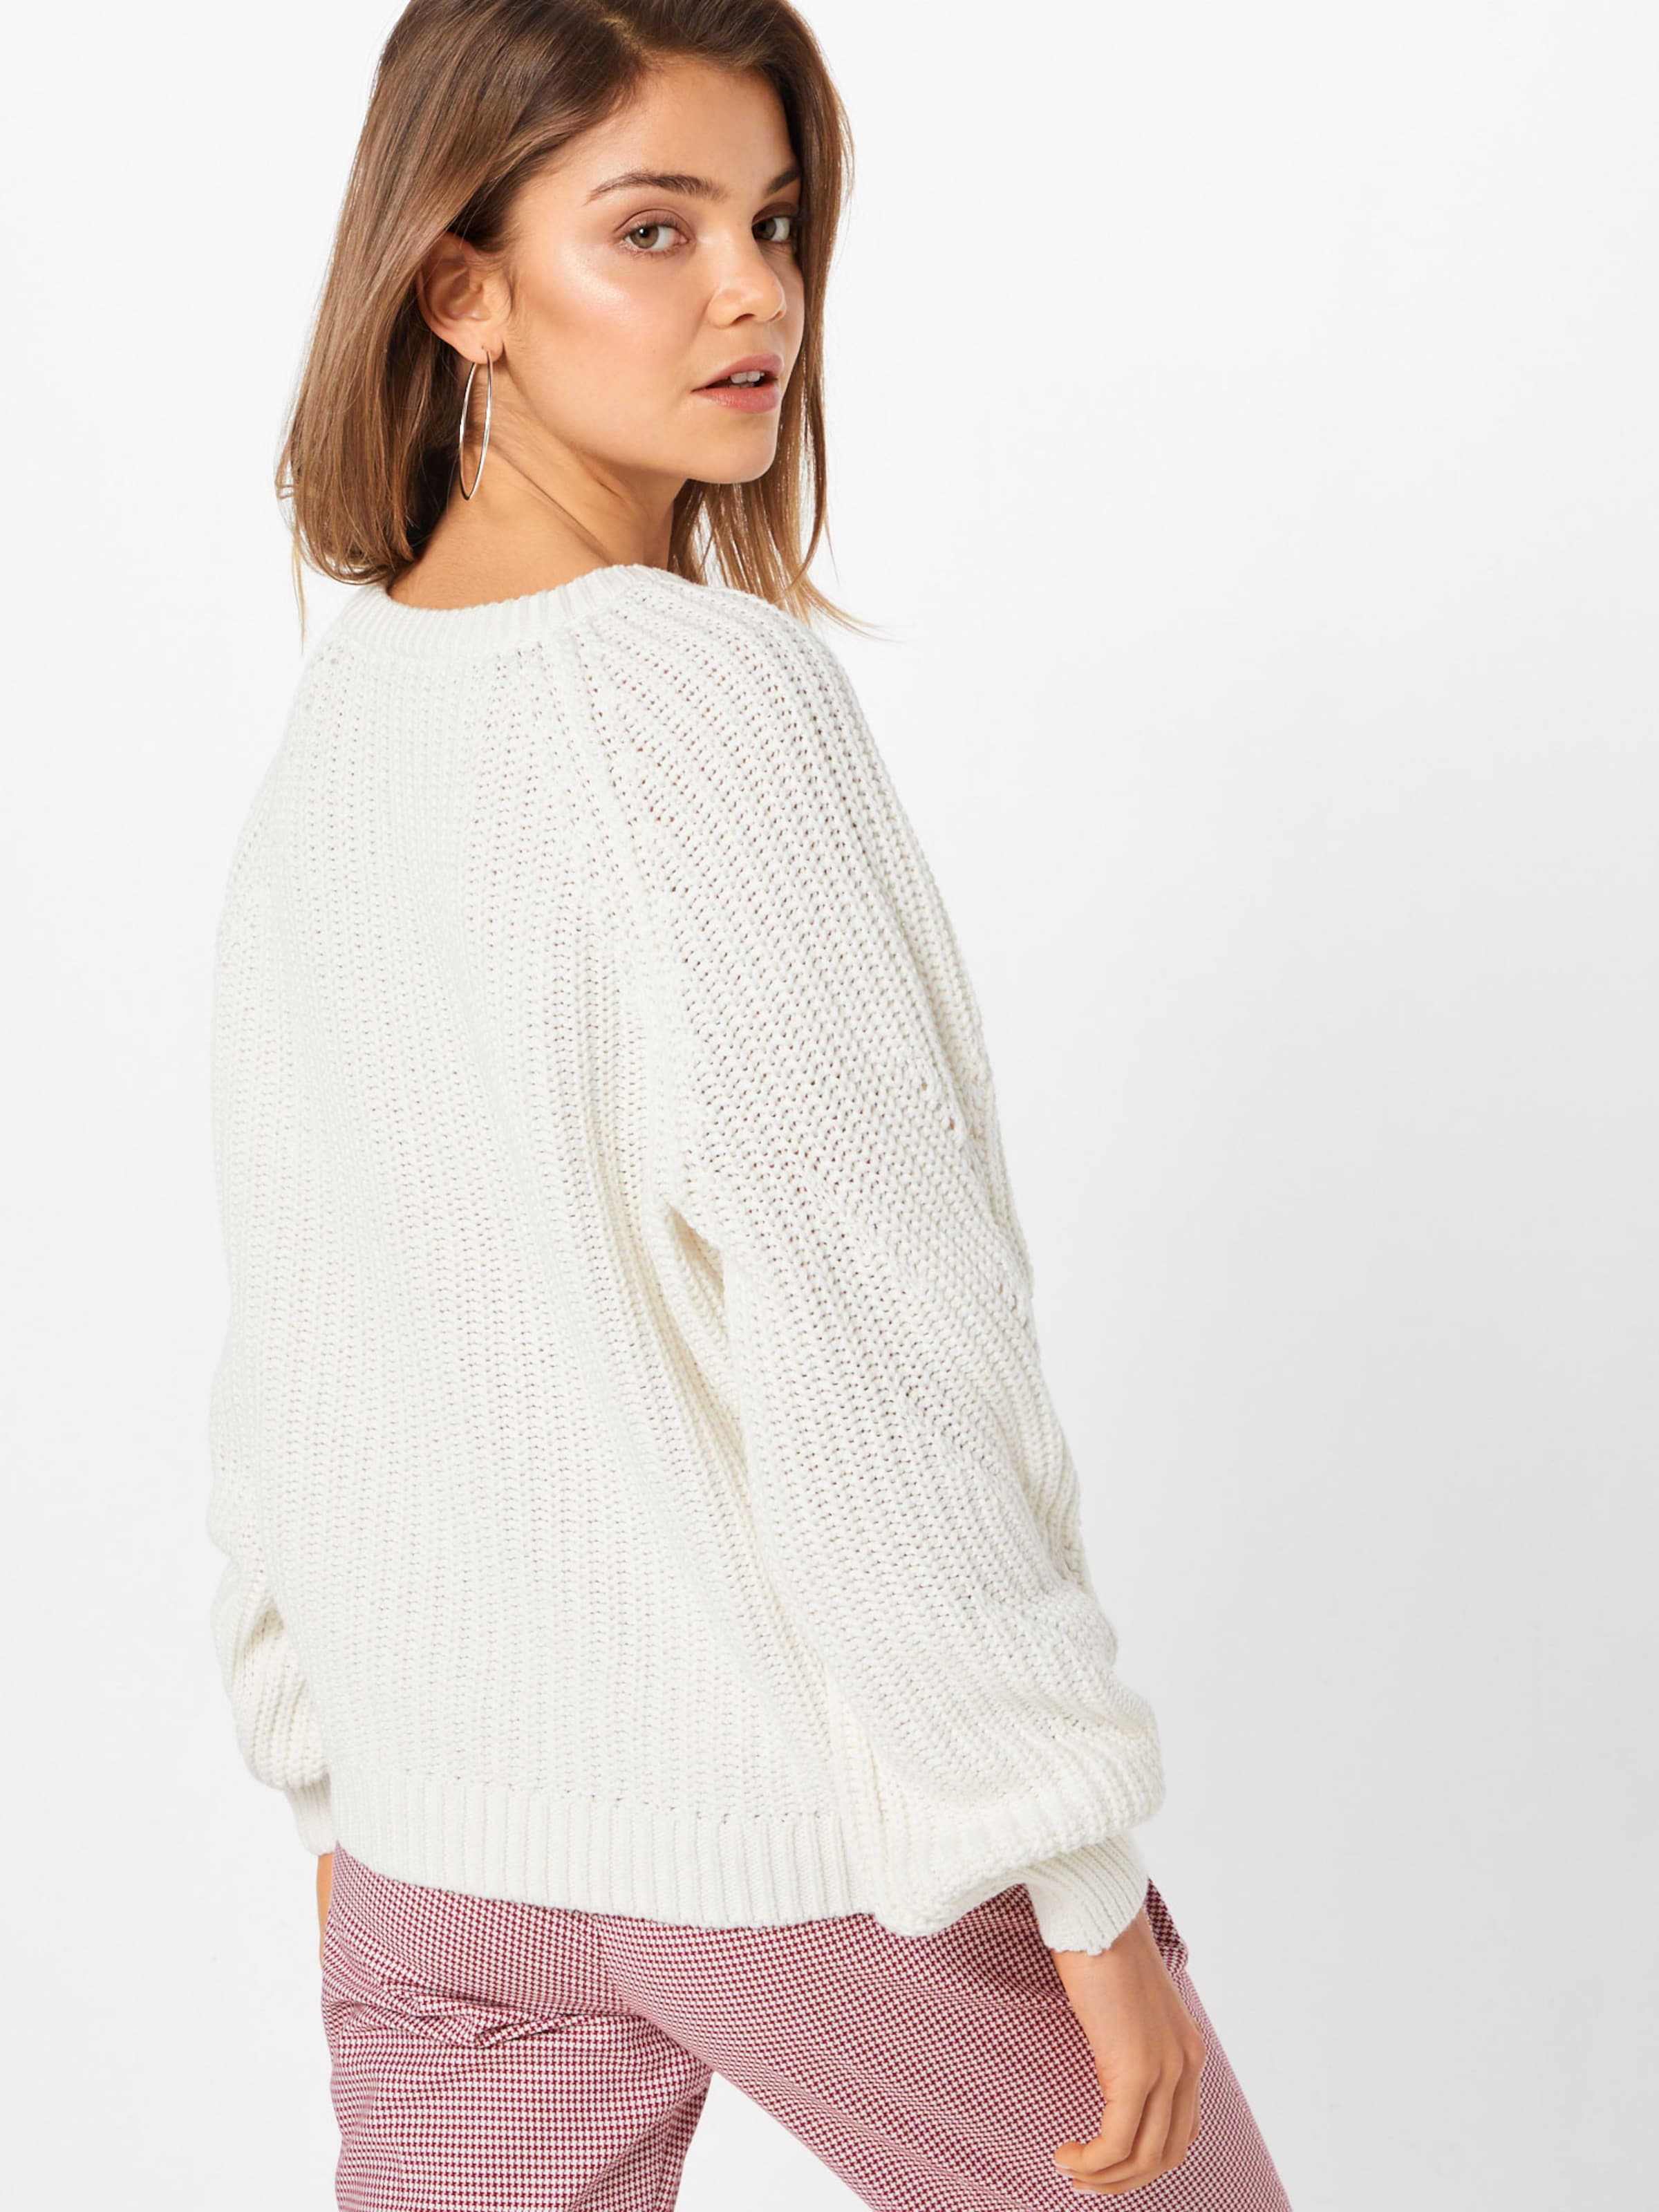 Wei In 'arianna' Object 'arianna' Object Pullover Pullover Pullover Wei Object In rxCoedBW